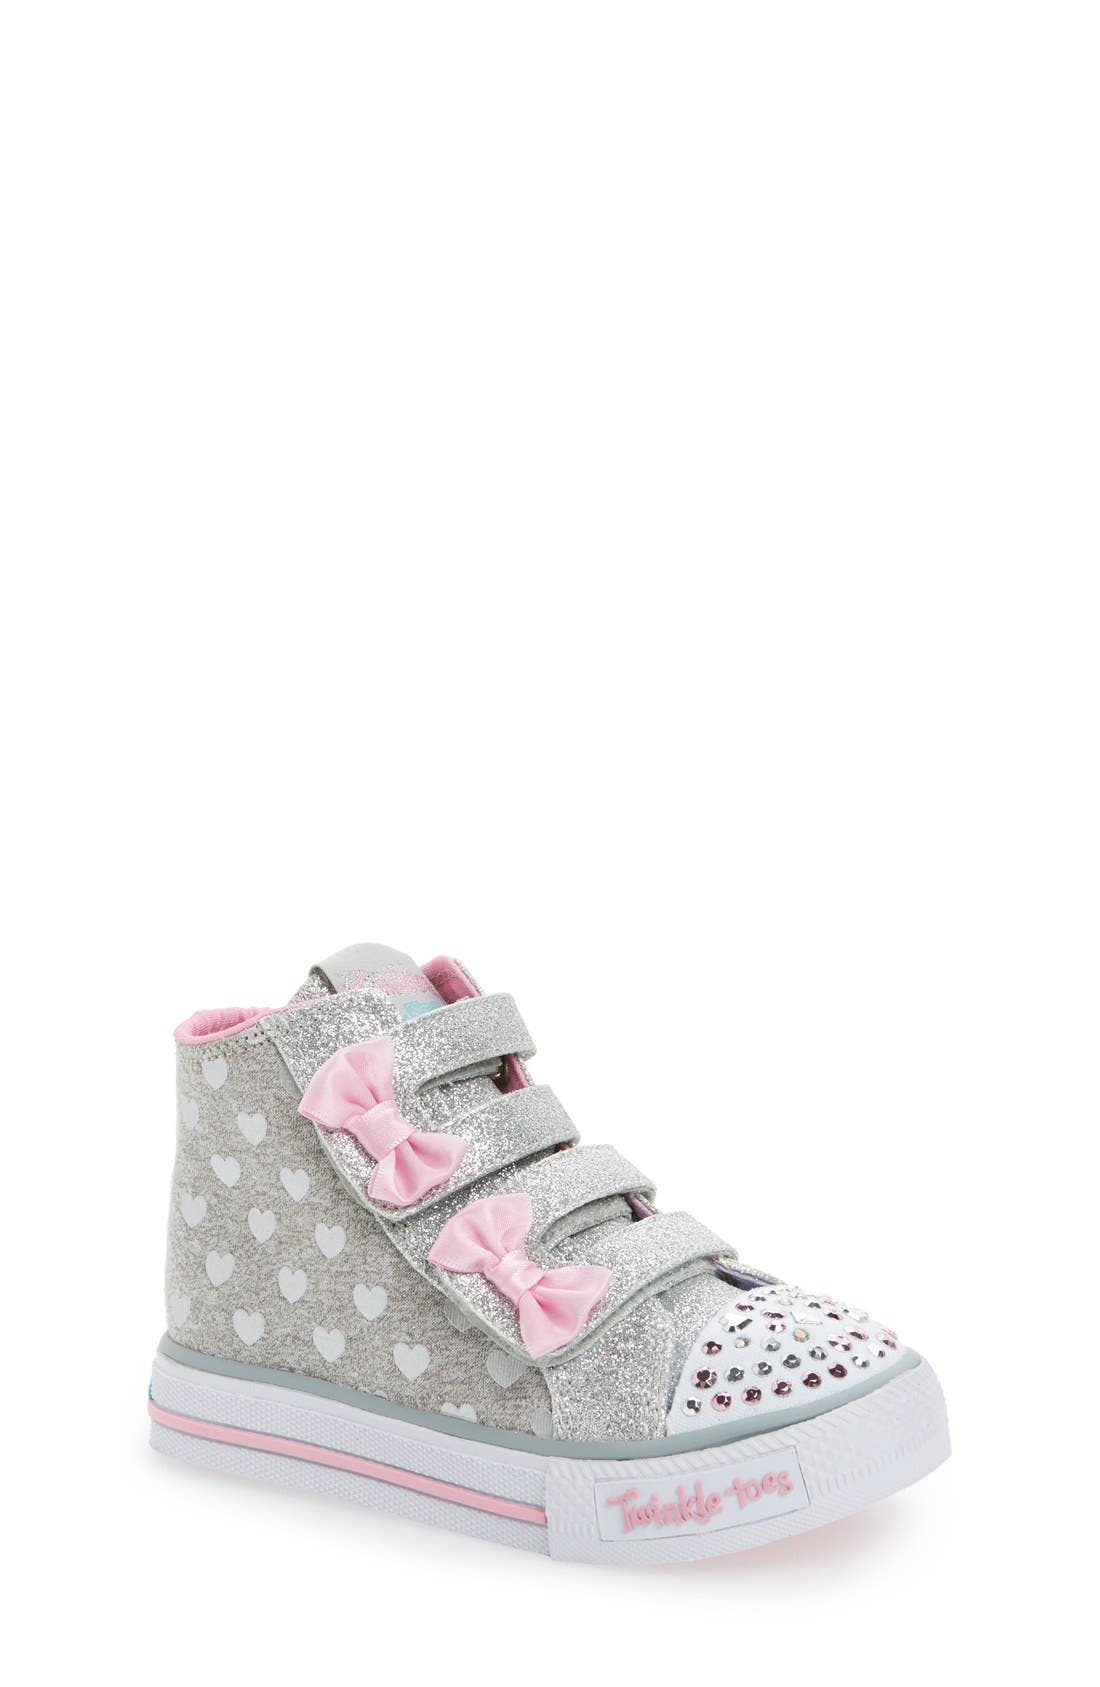 'Twinkle Toes - Shuffles' High Top Sneaker,                         Main,                         color, 596